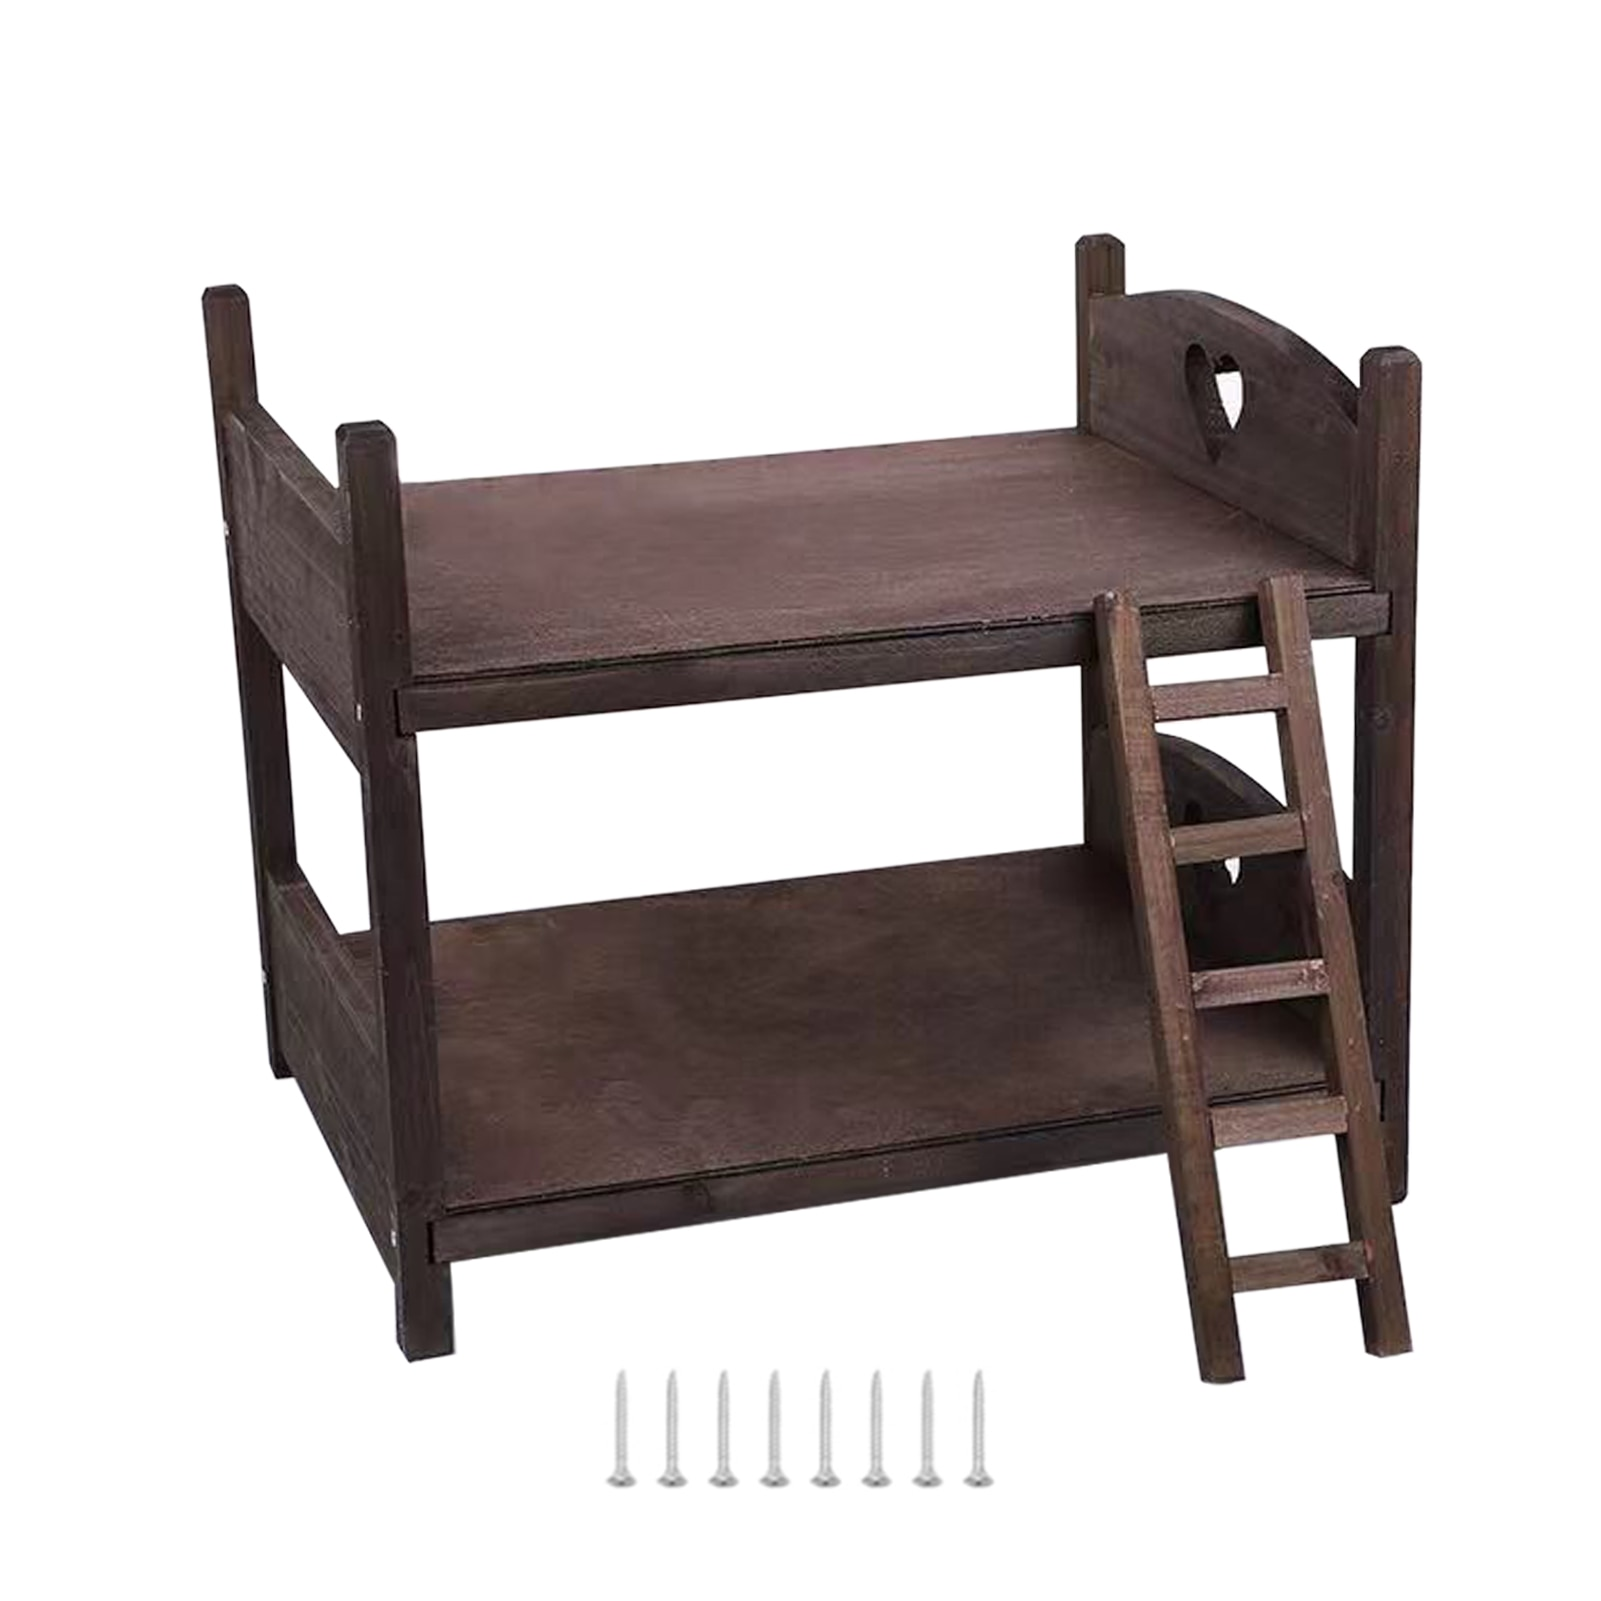 2 Layer With Screws Small Portable Wooden Cot Gift Baby Photography Bed Posing Prop Vintage Shooting Newborn Photo Studio Cute